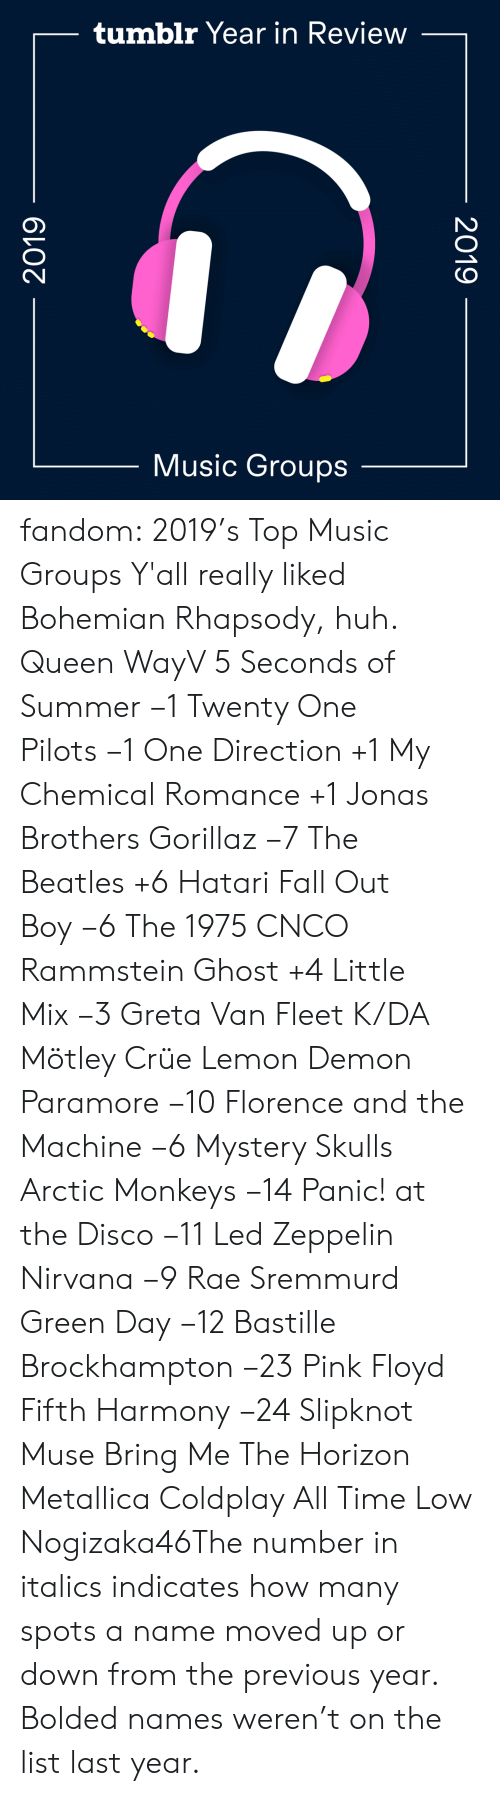 Pilots: tumblr Year in Review  Music Groups  2019  2019 fandom:  2019's Top Music Groups  Y'all really liked Bohemian Rhapsody, huh.  Queen  WayV  5 Seconds of Summer −1  Twenty One Pilots −1  One Direction +1  My Chemical Romance +1  Jonas Brothers  Gorillaz −7  The Beatles +6  Hatari  Fall Out Boy −6  The 1975  CNCO  Rammstein  Ghost +4  Little Mix −3  Greta Van Fleet  K/DA  Mötley Crüe  Lemon Demon  Paramore −10  Florence and the Machine −6  Mystery Skulls  Arctic Monkeys −14  Panic! at the Disco −11  Led Zeppelin   Nirvana −9  Rae Sremmurd  Green Day −12  Bastille  Brockhampton −23  Pink Floyd  Fifth Harmony −24  Slipknot  Muse  Bring Me The Horizon  Metallica  Coldplay  All Time Low  Nogizaka46The number in italics indicates how many spots a name moved up or down from the previous year. Bolded names weren't on the list last year.